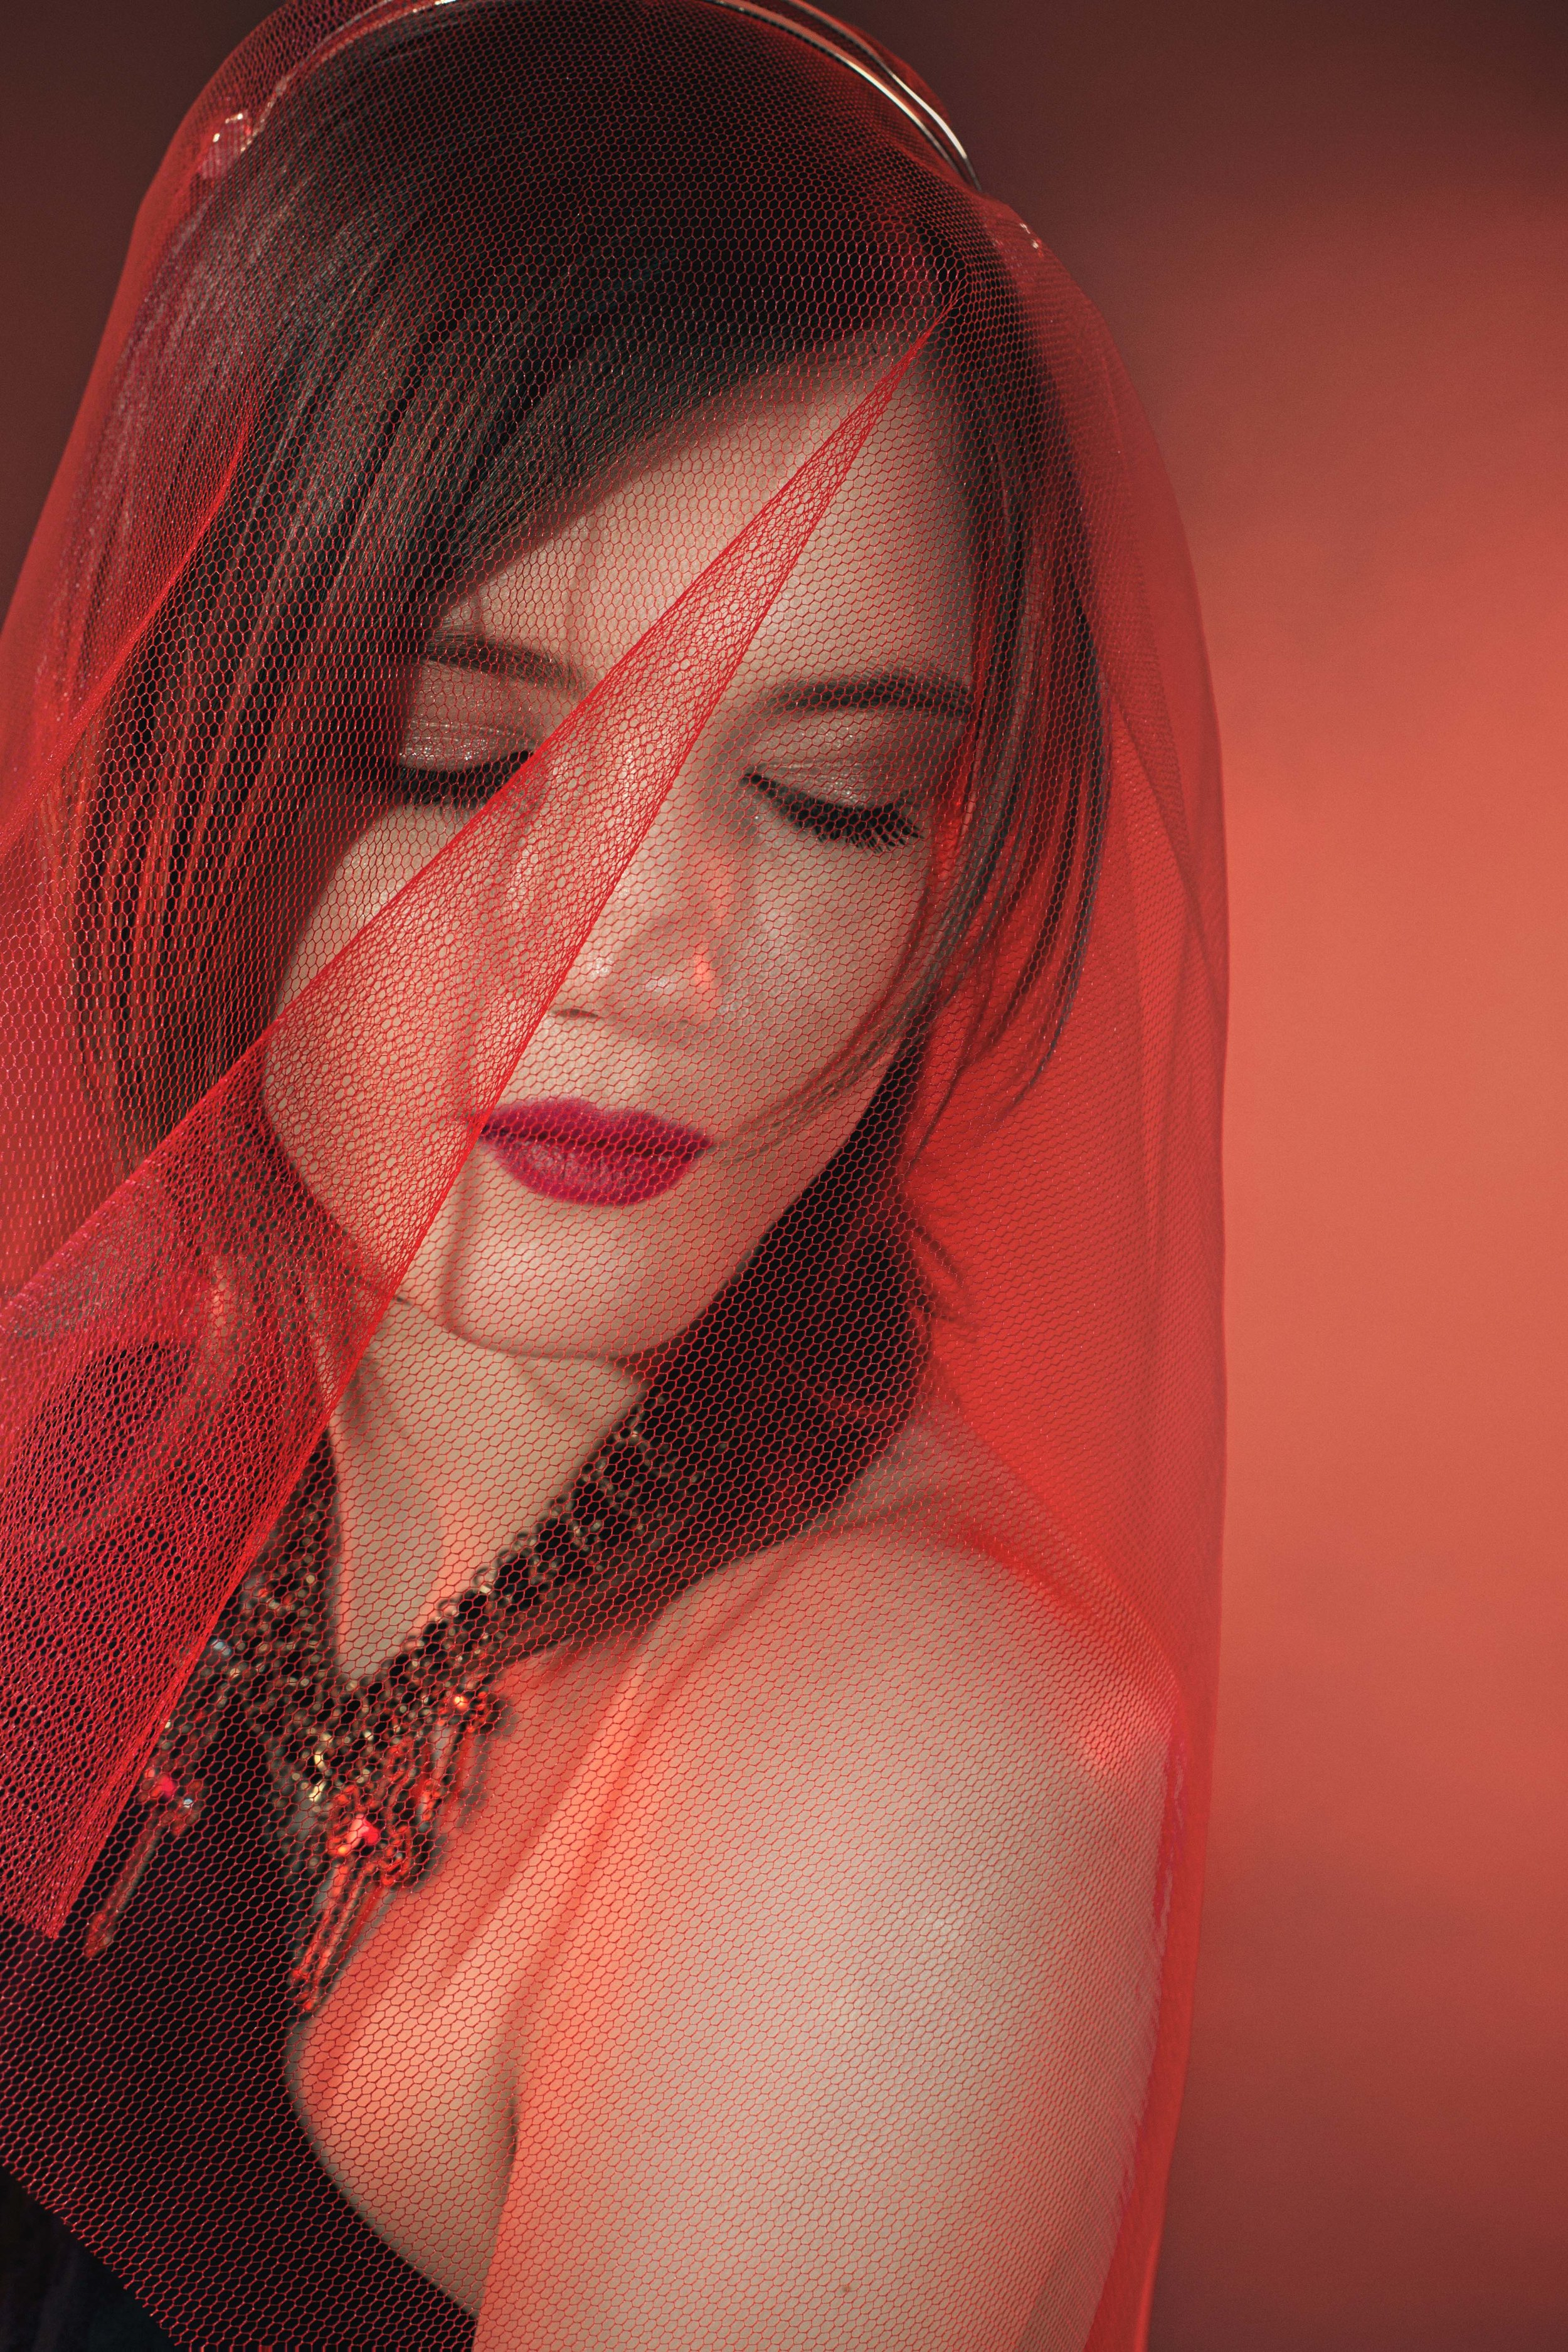 EXCLUSIVE // RED LIGHTS BY PEDRO MATOS